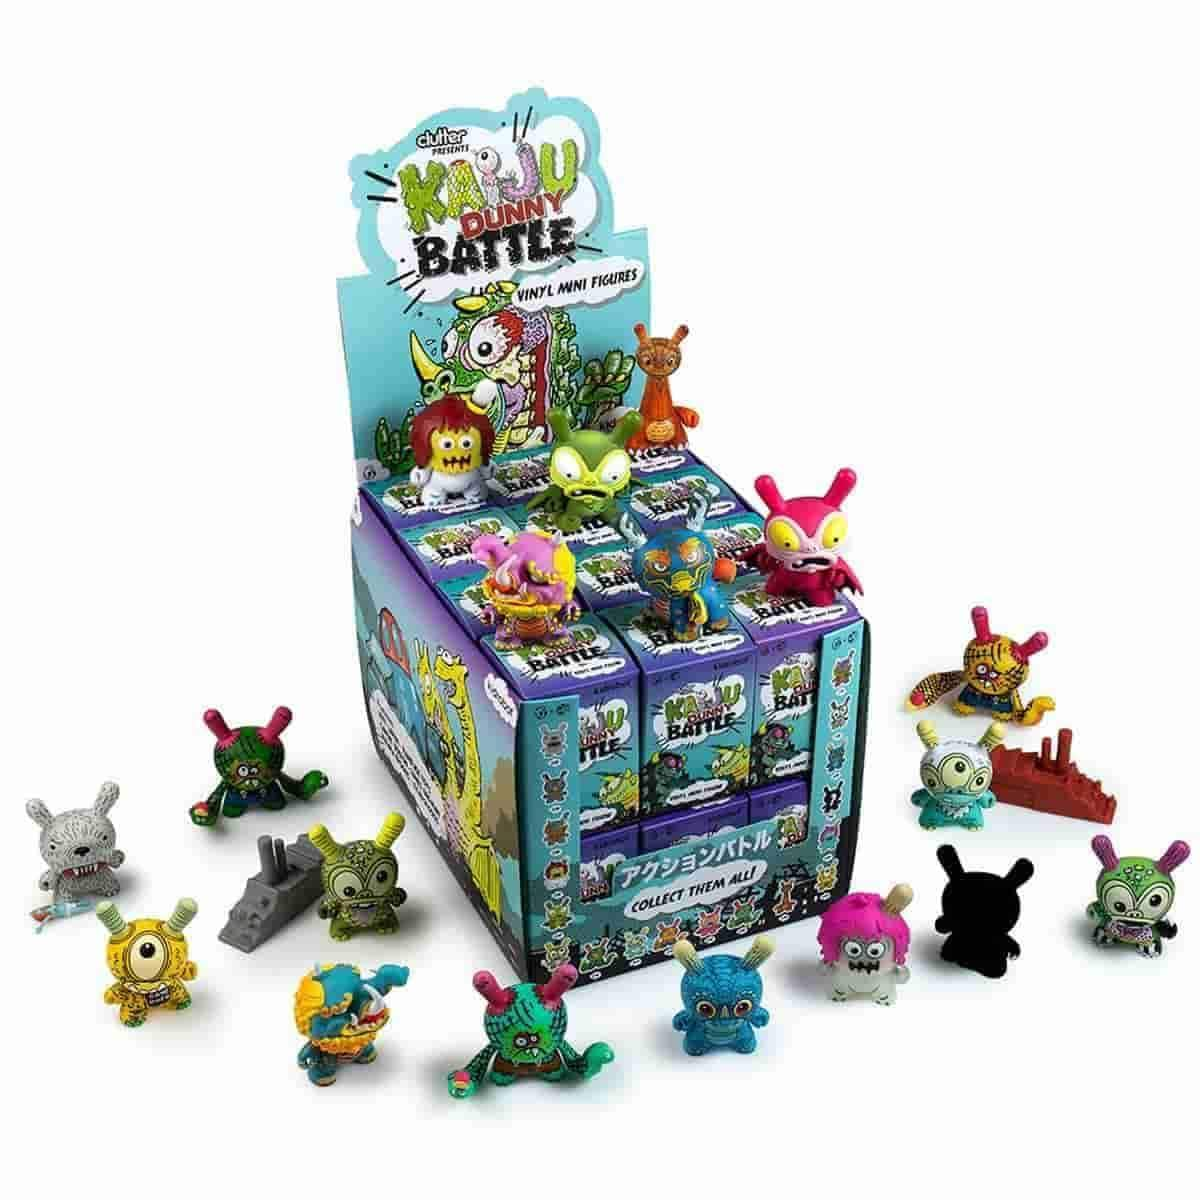 Kaiju Dunny Series Full Display Case Contains 24 Blind Boxes